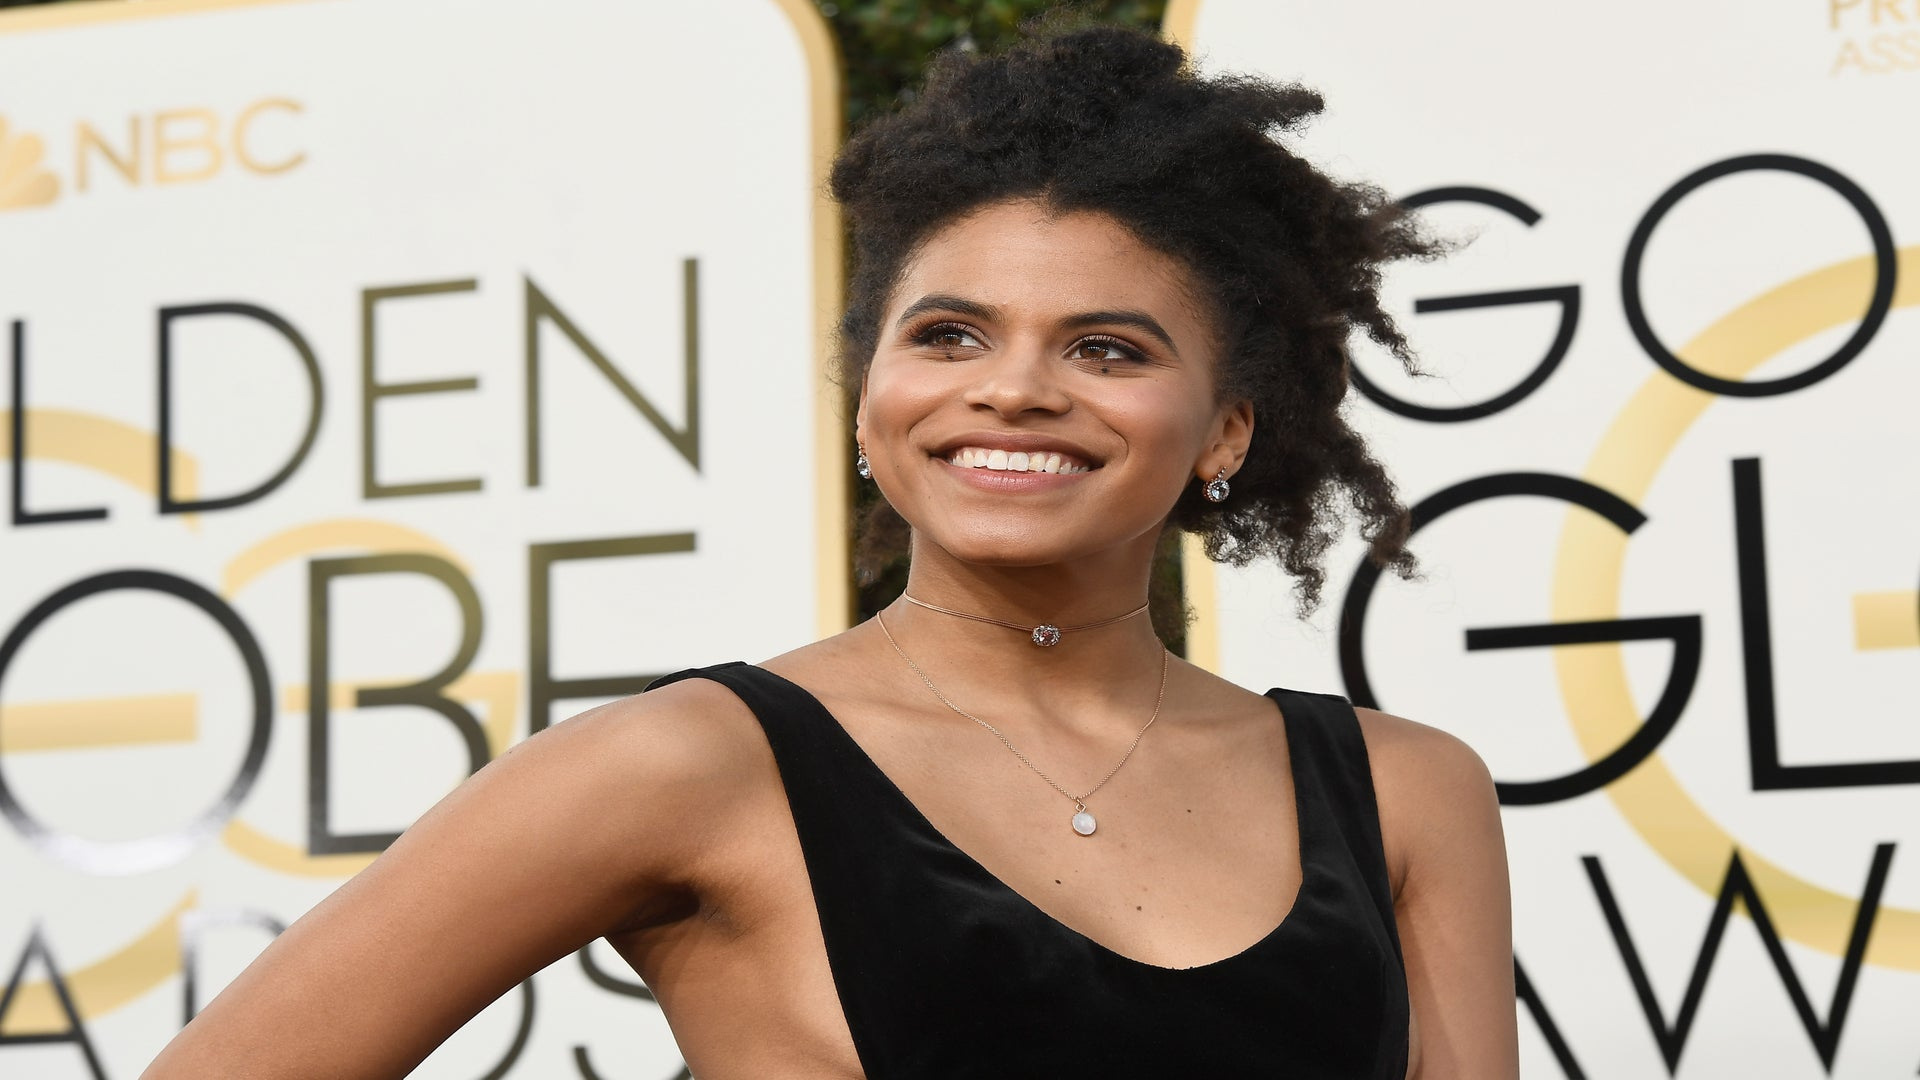 'Atlanta' Actress Zazie Beetz Is Top Naturalista At The 2017 Golden Globes